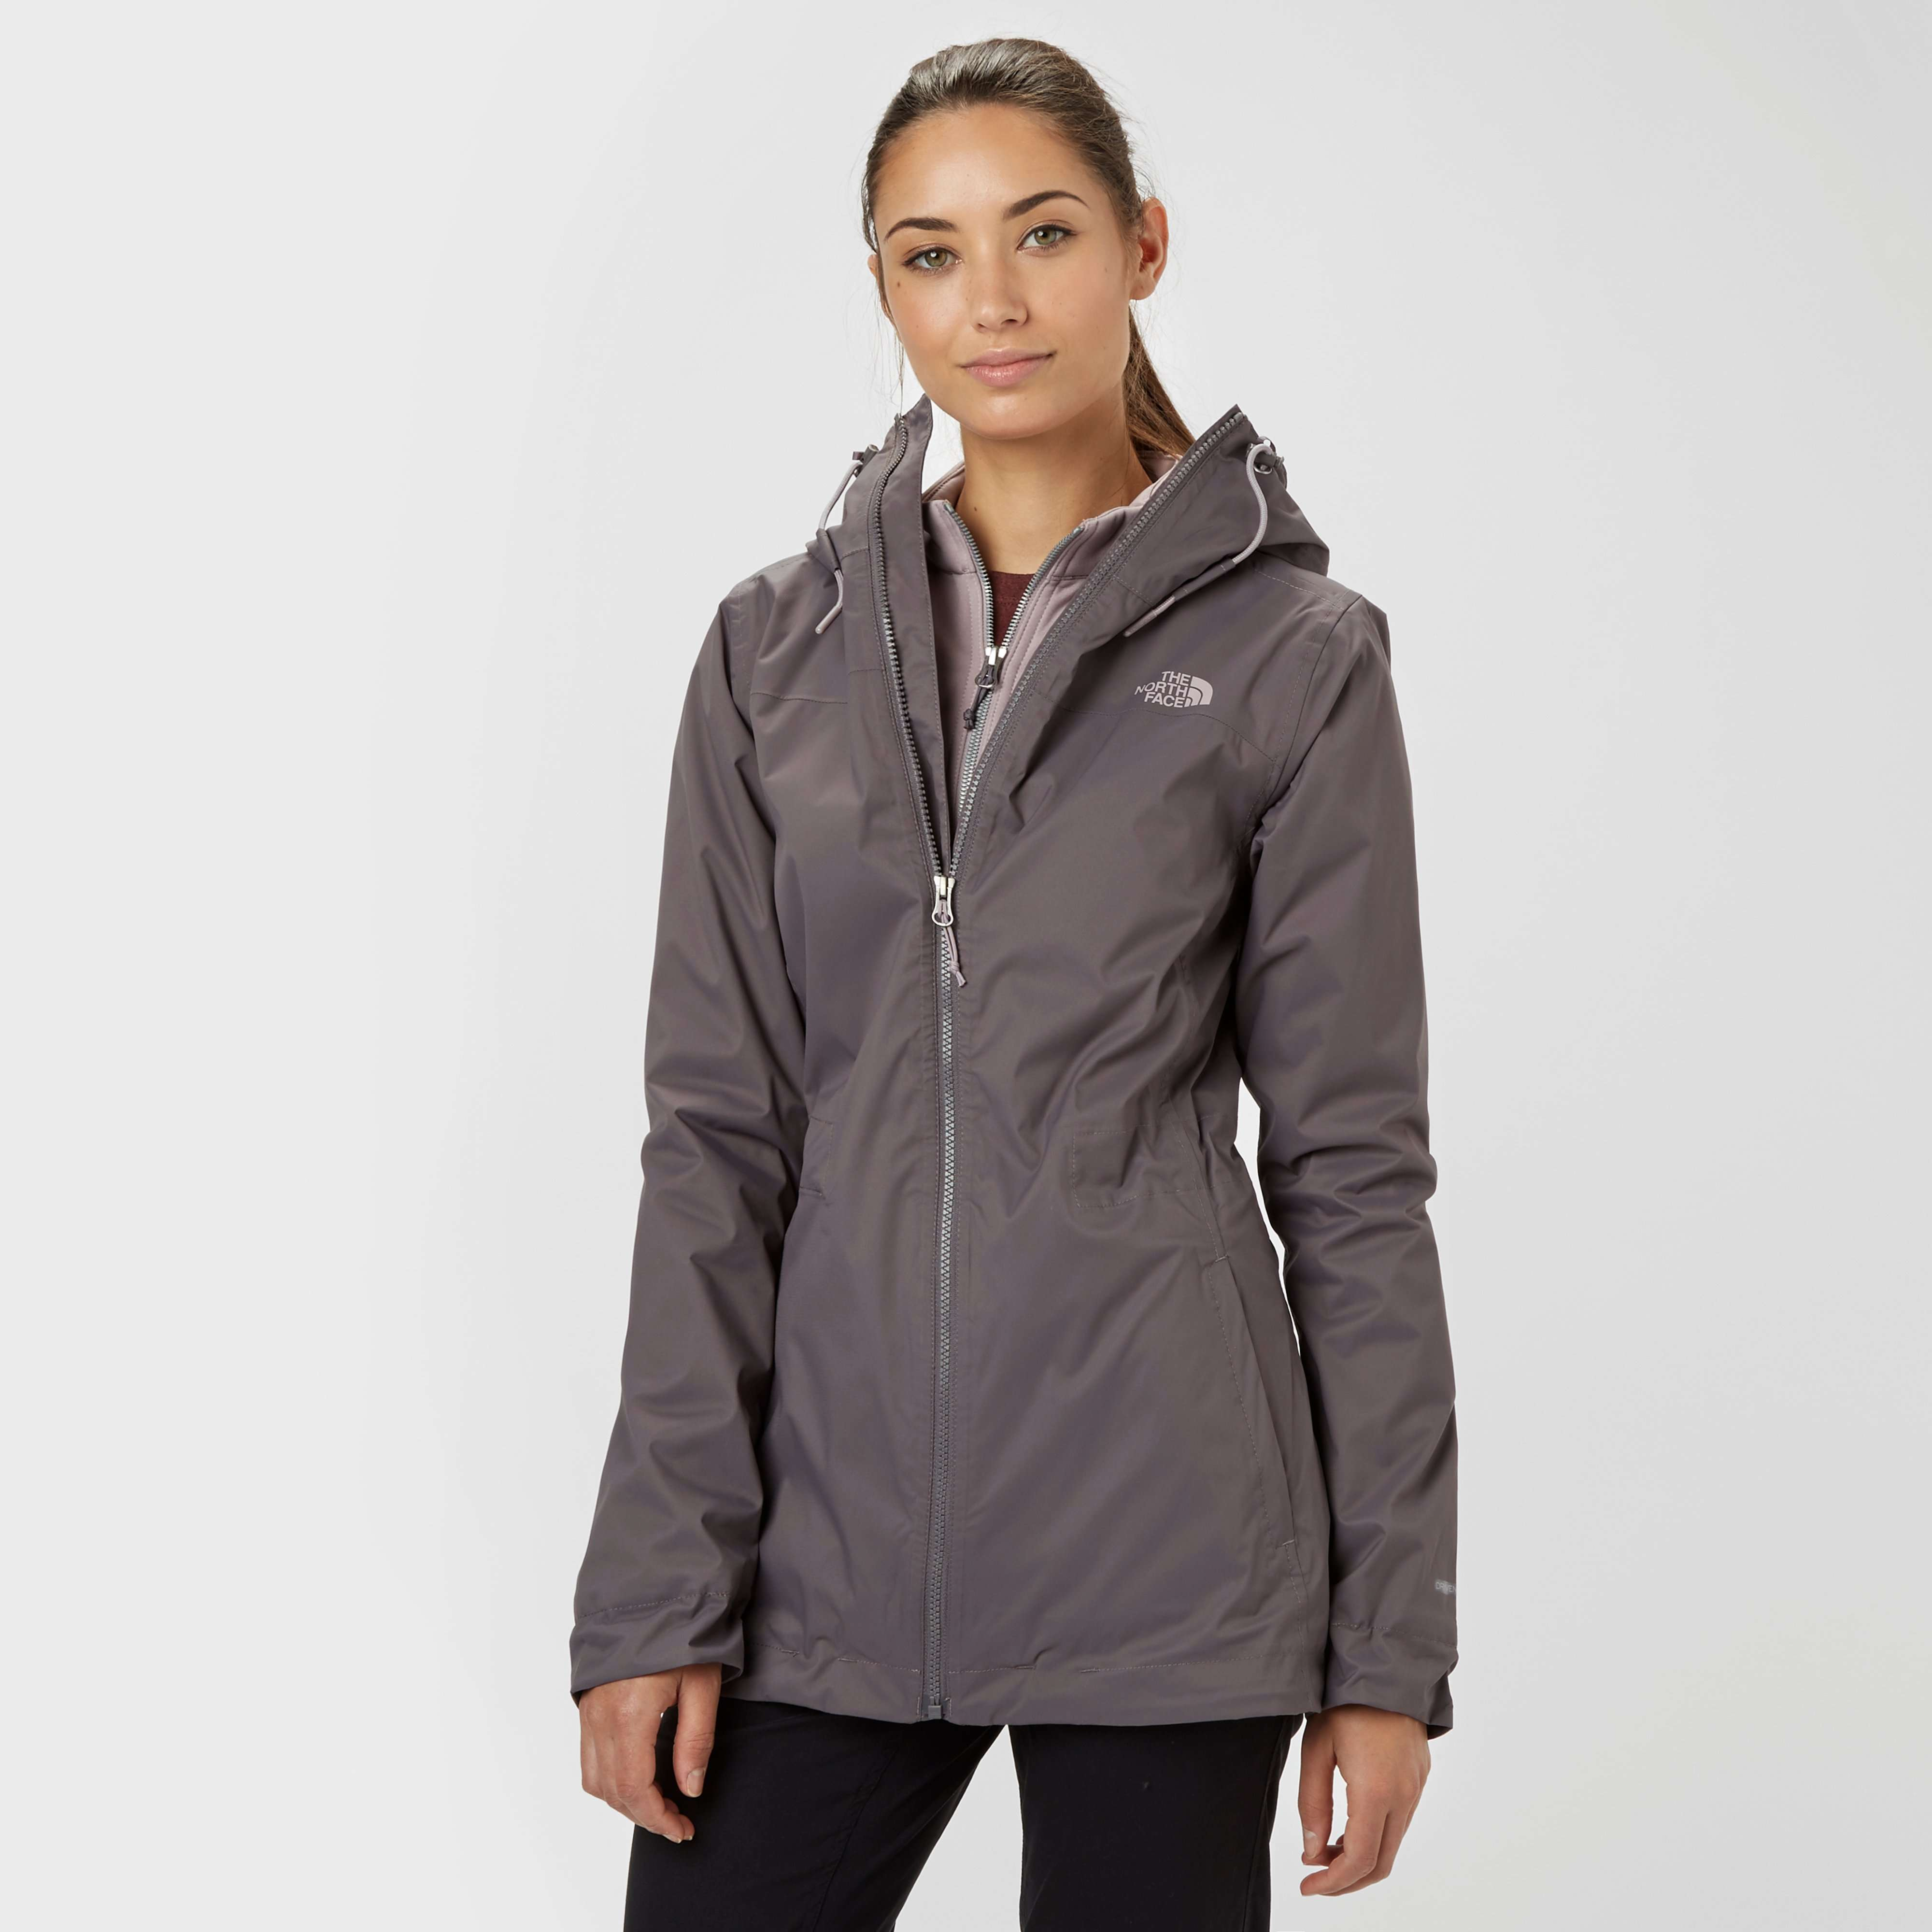 THE NORTH FACE Women's Morton TriClimate® 3 in 1 DryVent™ Jacket